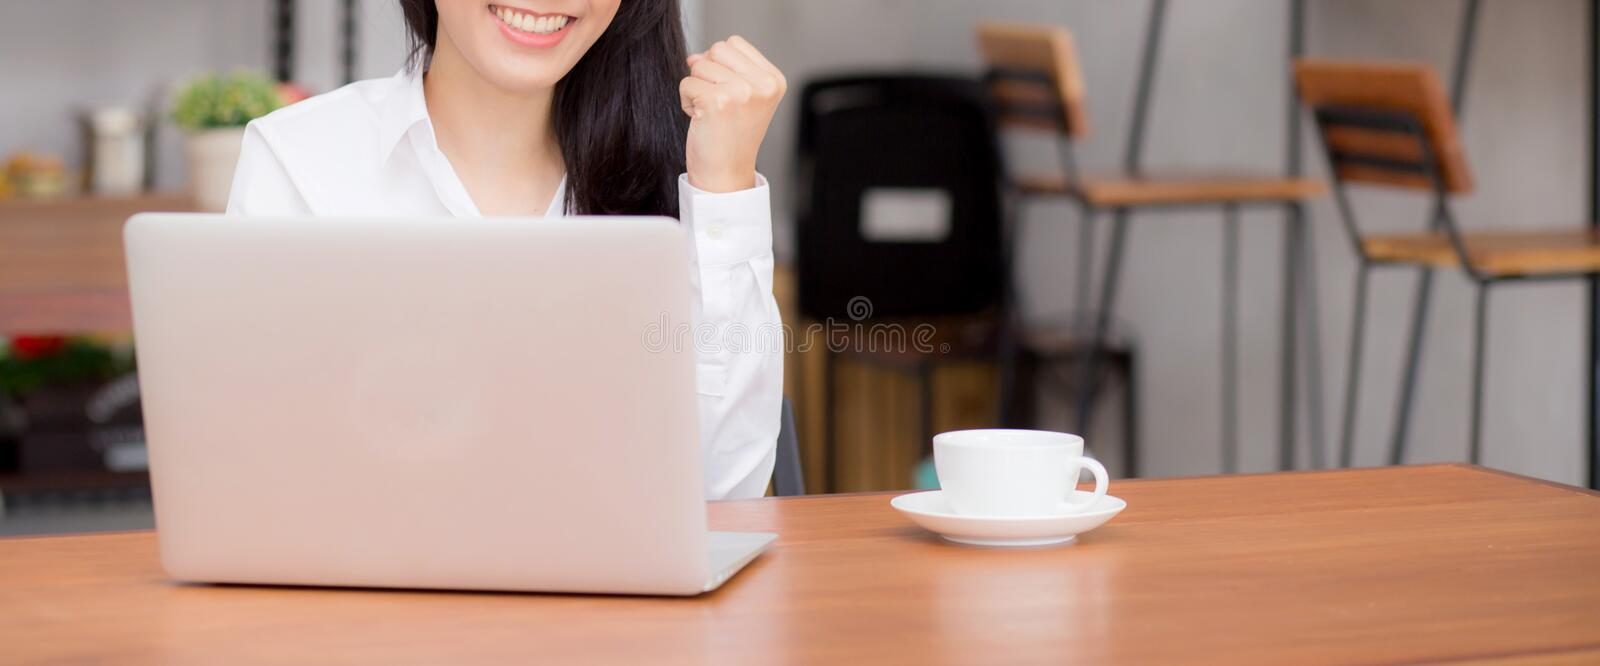 Closeup banner website asian young businesswoman excited and glad of success with laptop royalty free stock photo